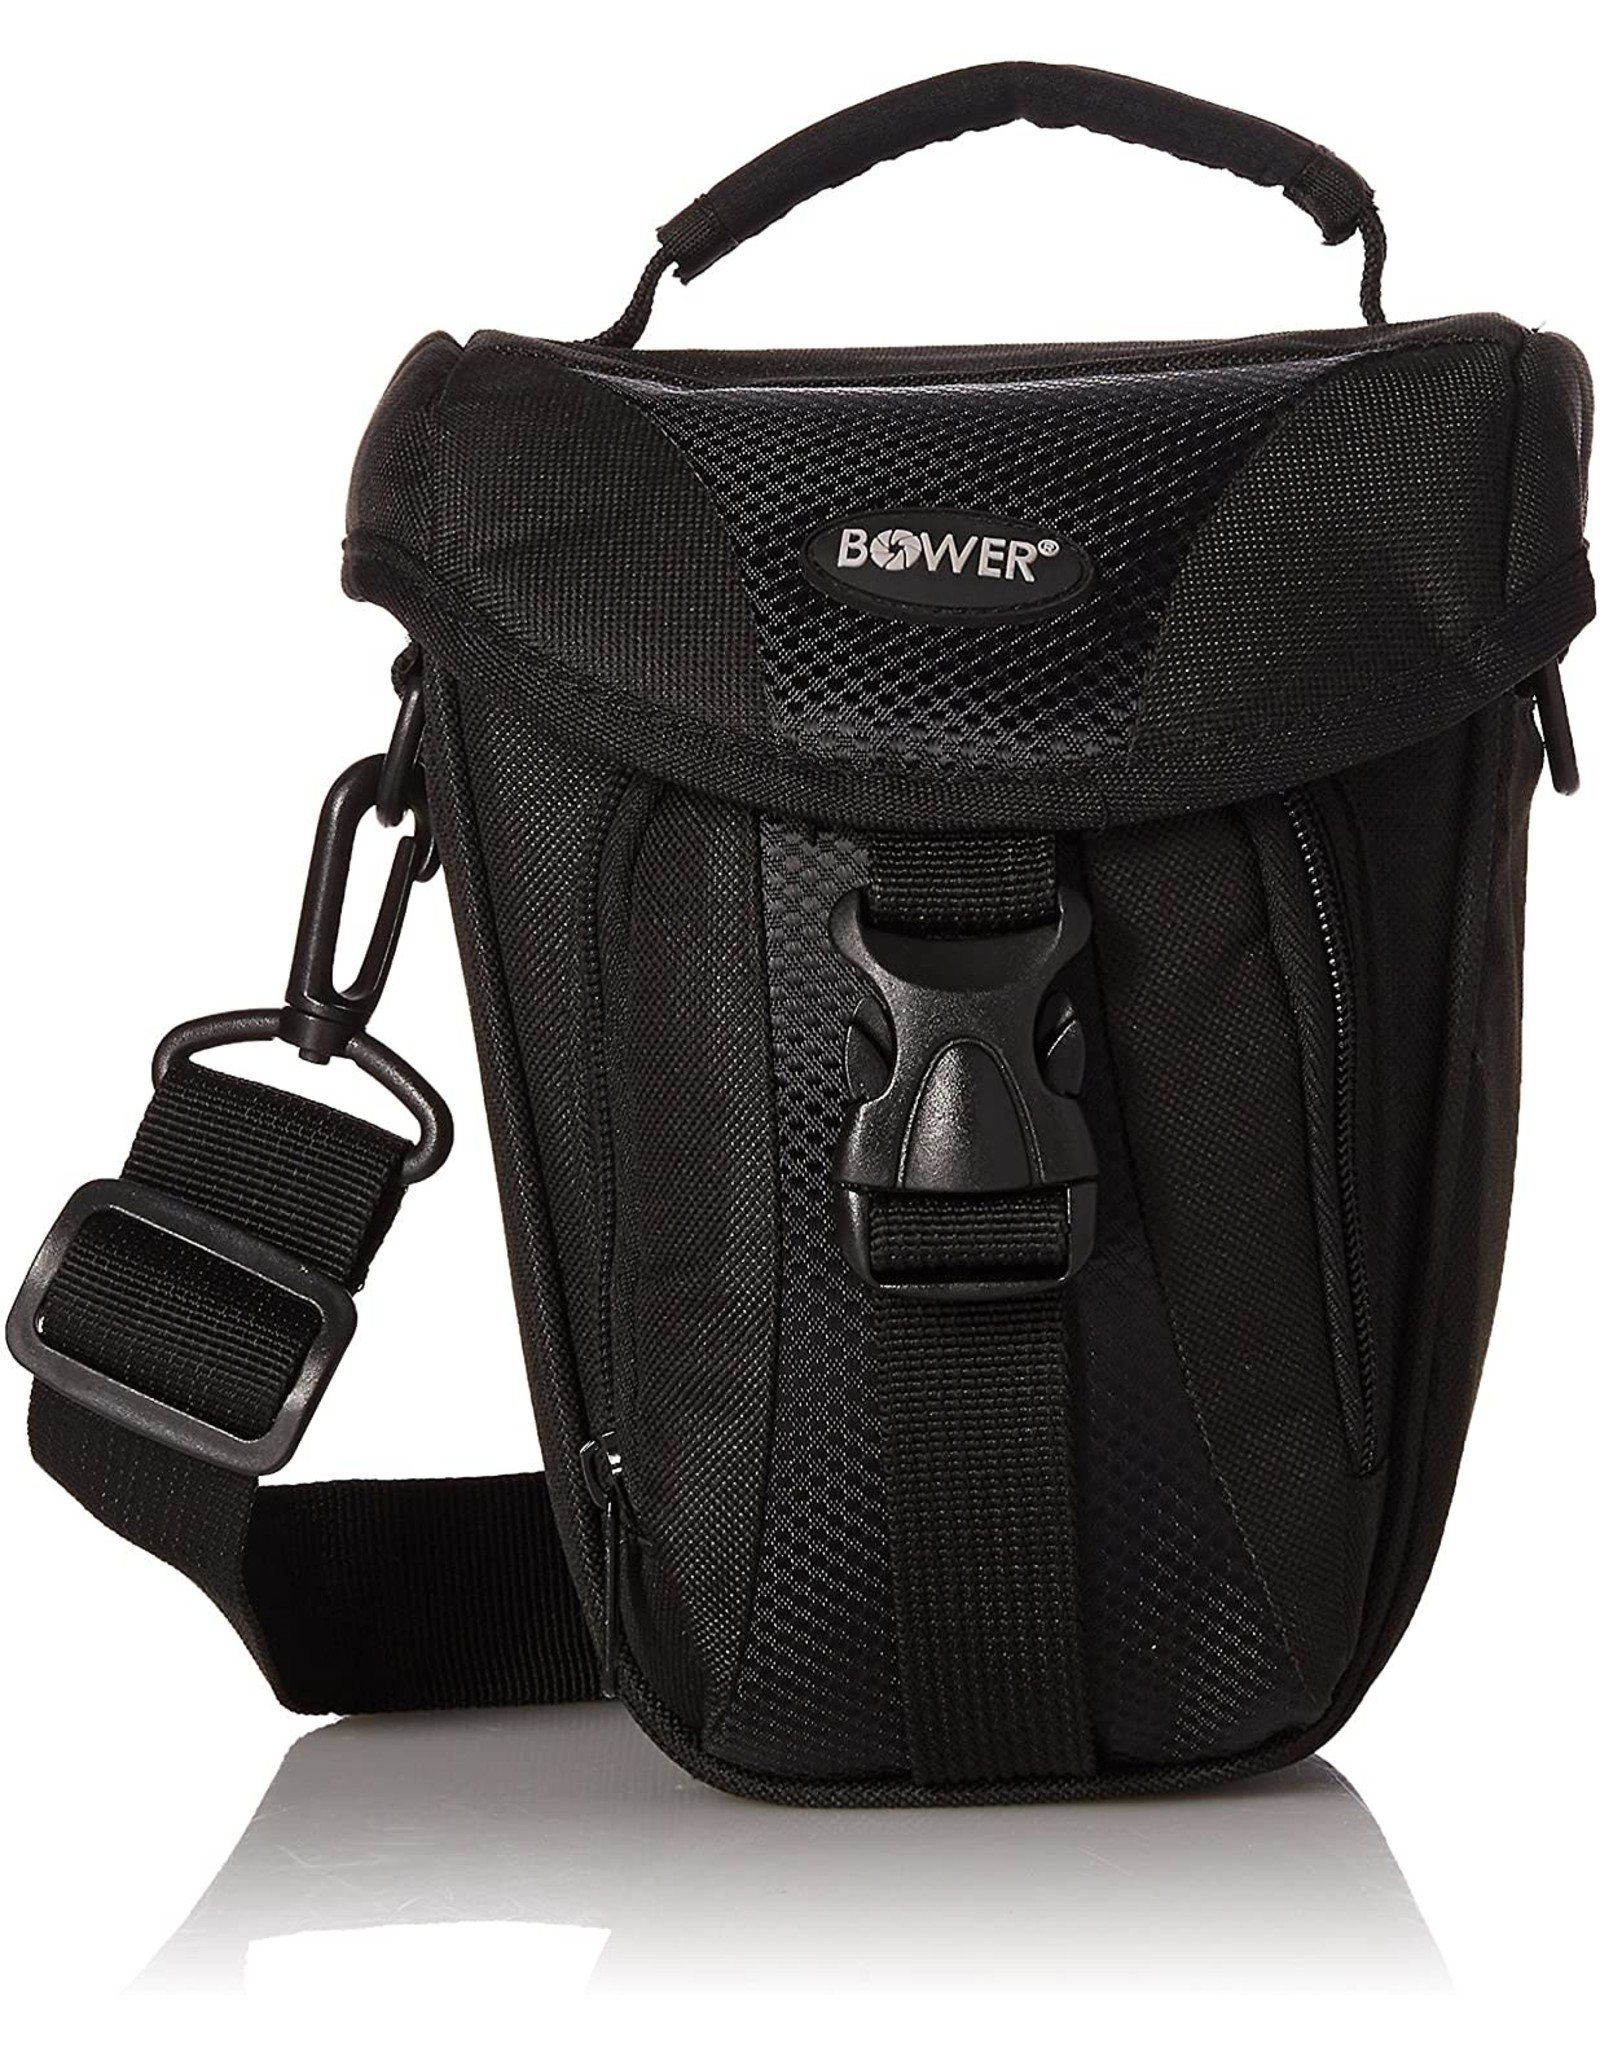 Bower Bower Long Zoom Case SCB600